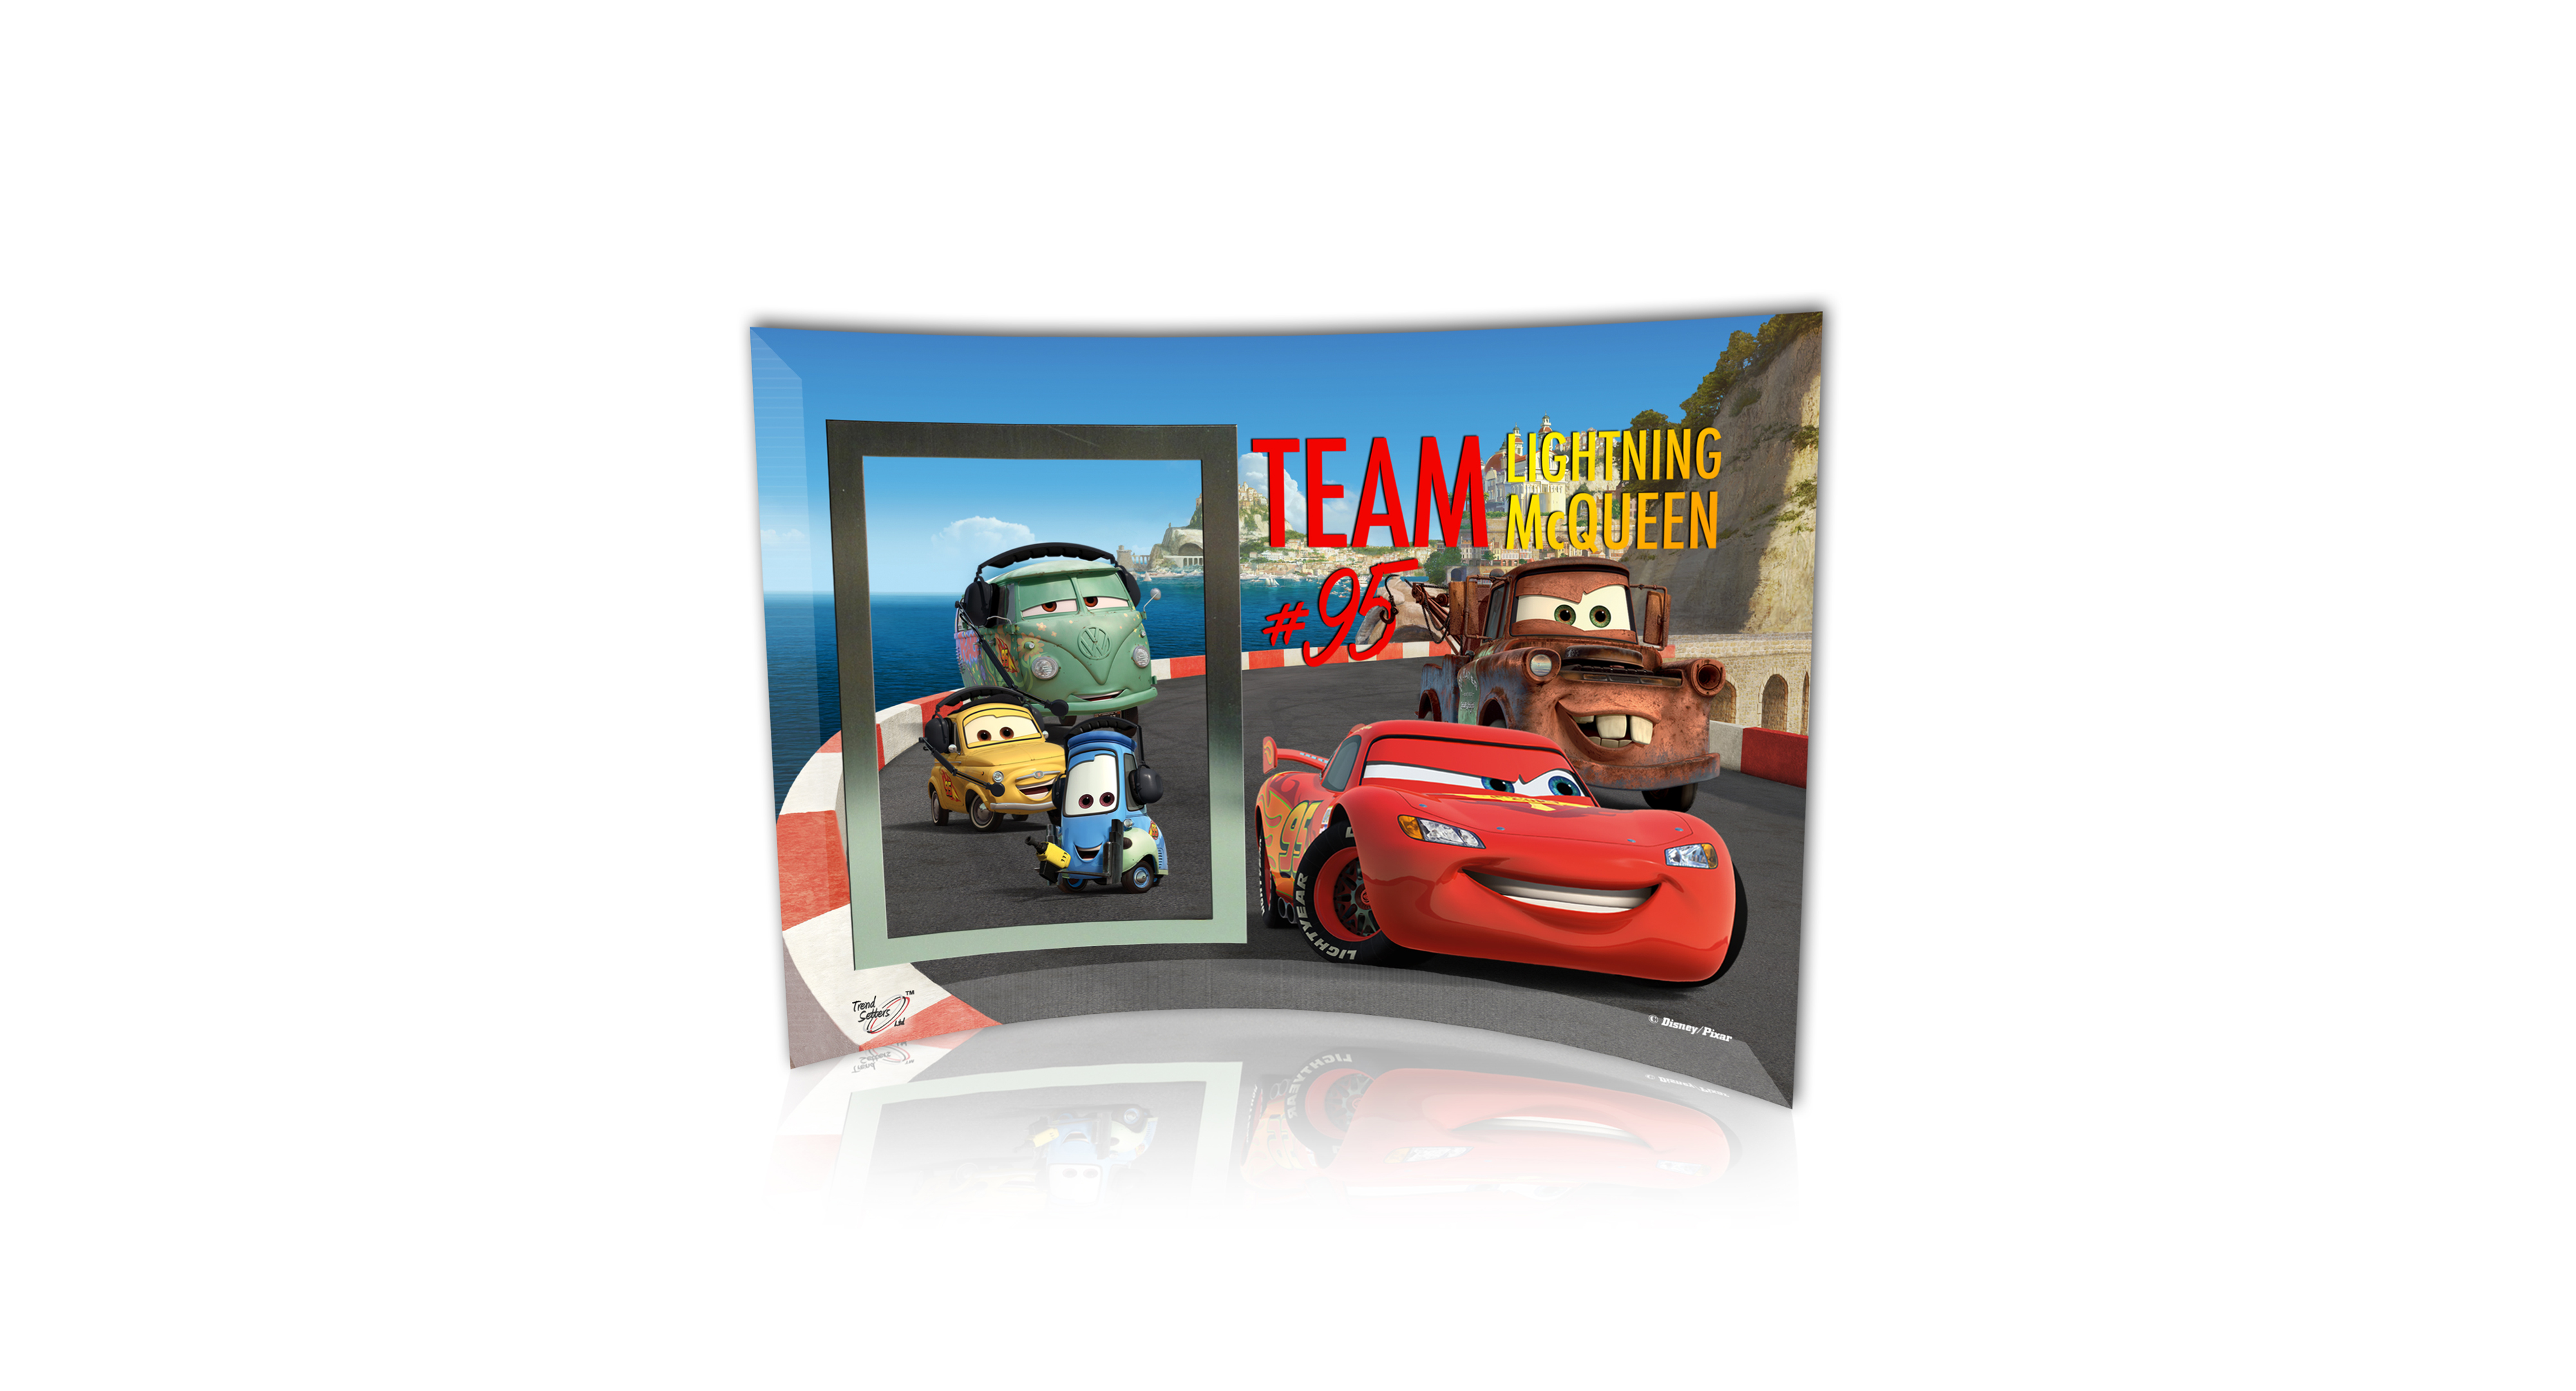 Trend setters picture frame disney cars 2 team mcqueen products trend setters picture frame disney cars 2 team mcqueen jeuxipadfo Choice Image